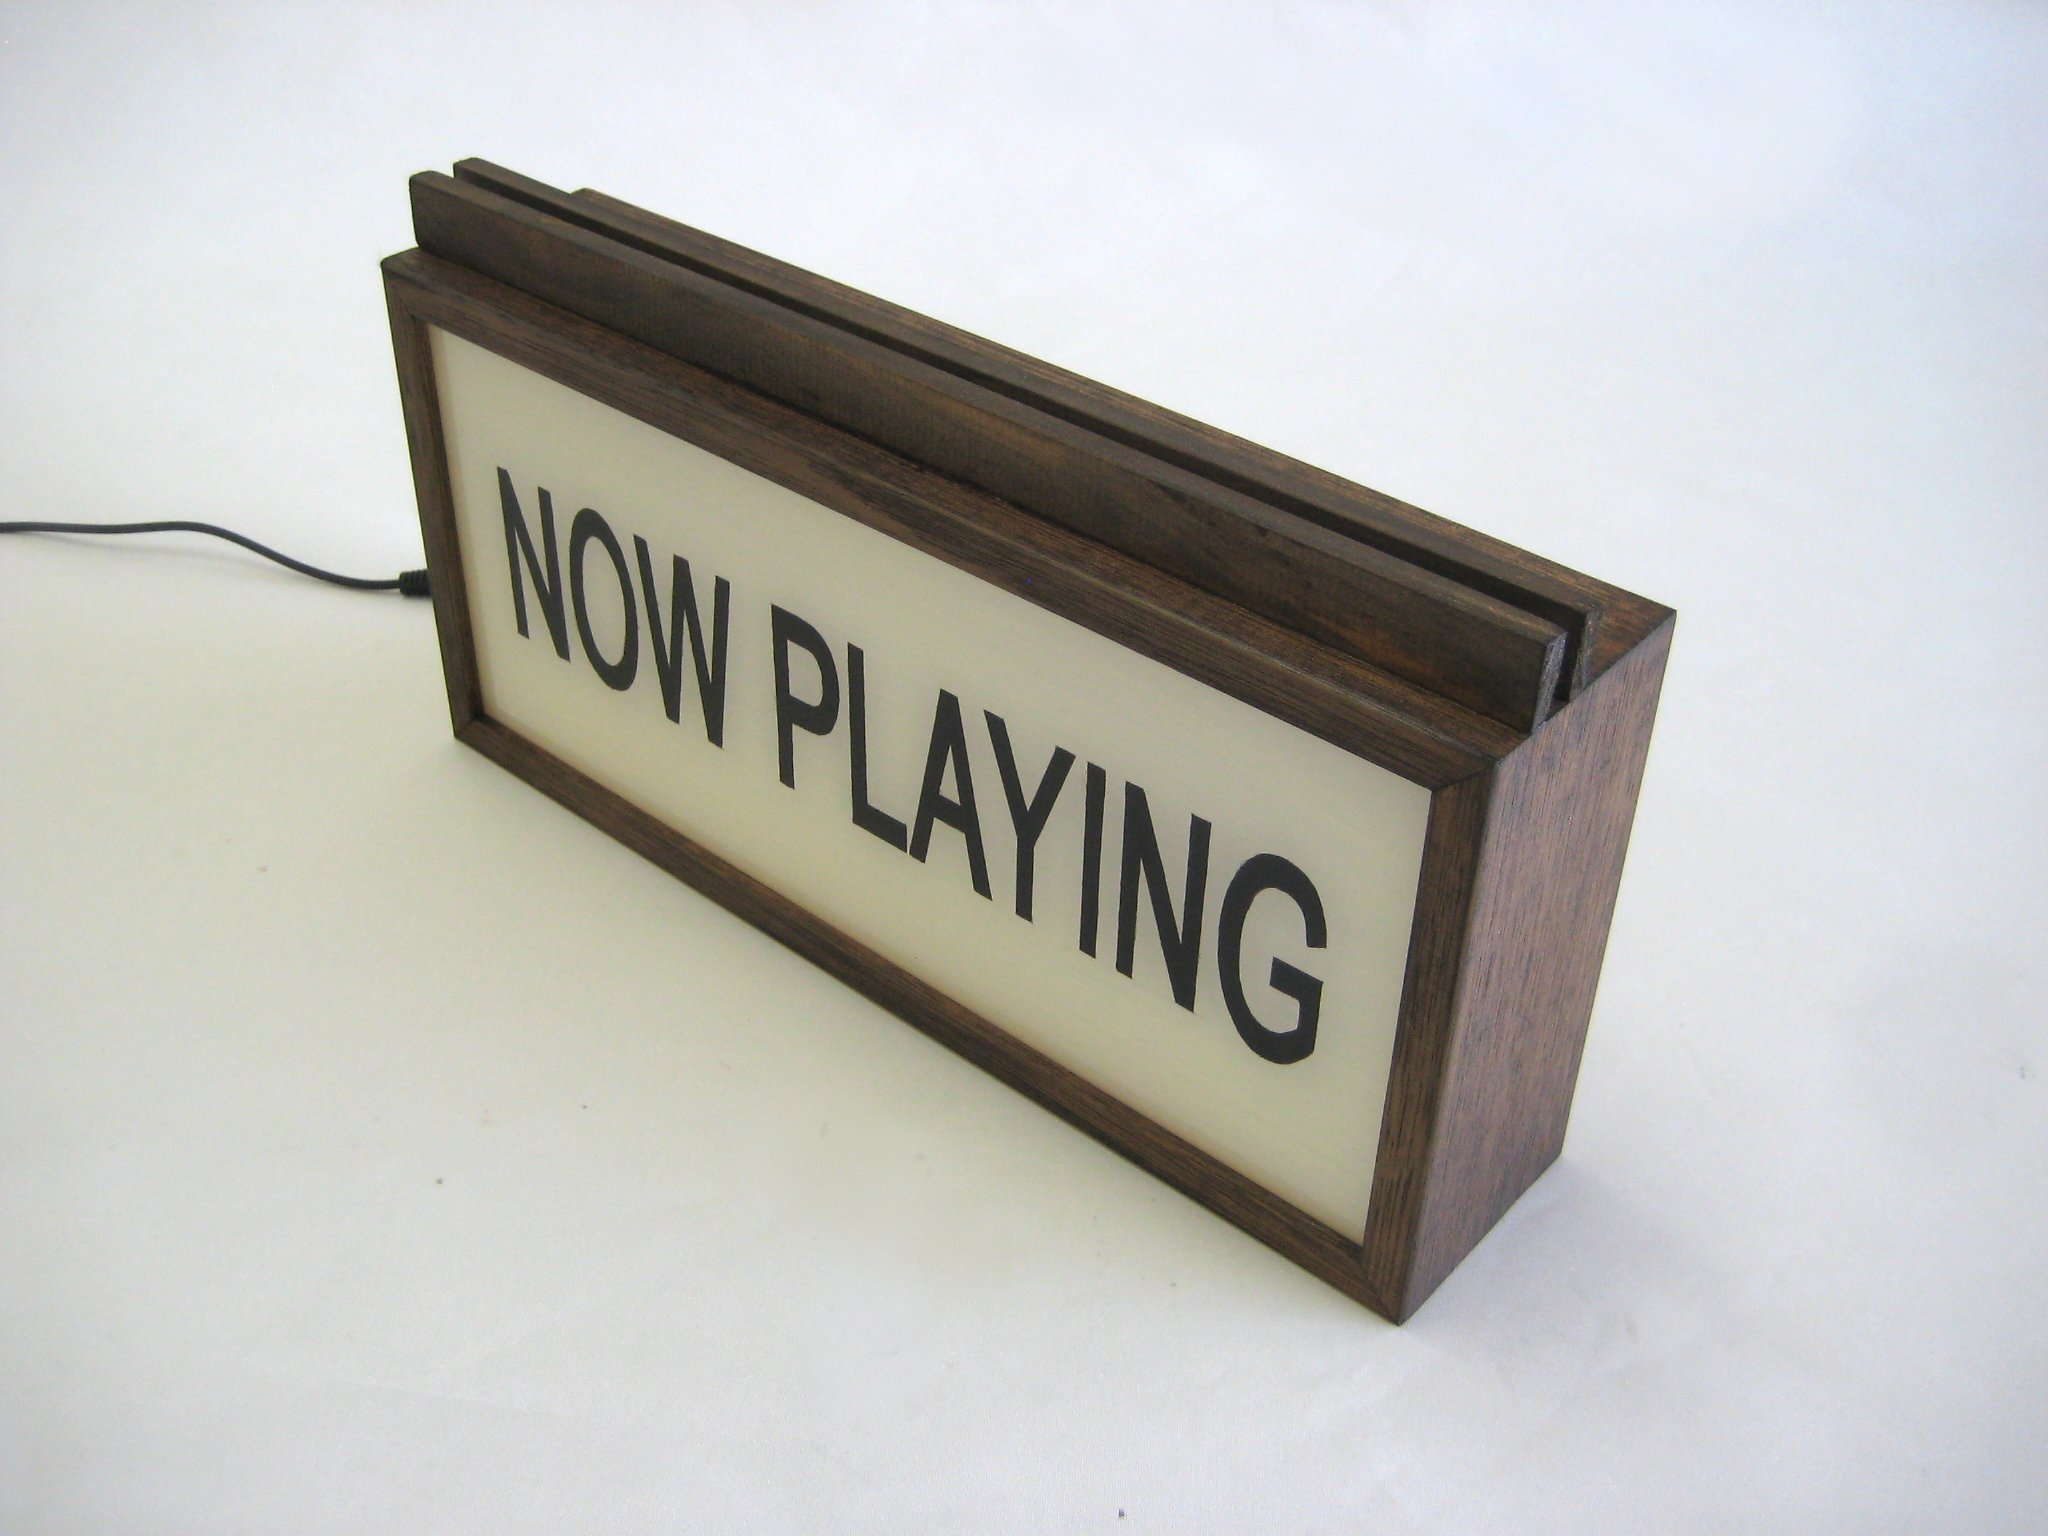 Now Playing Wooden Vinyl Record Stand Holder Bingkai